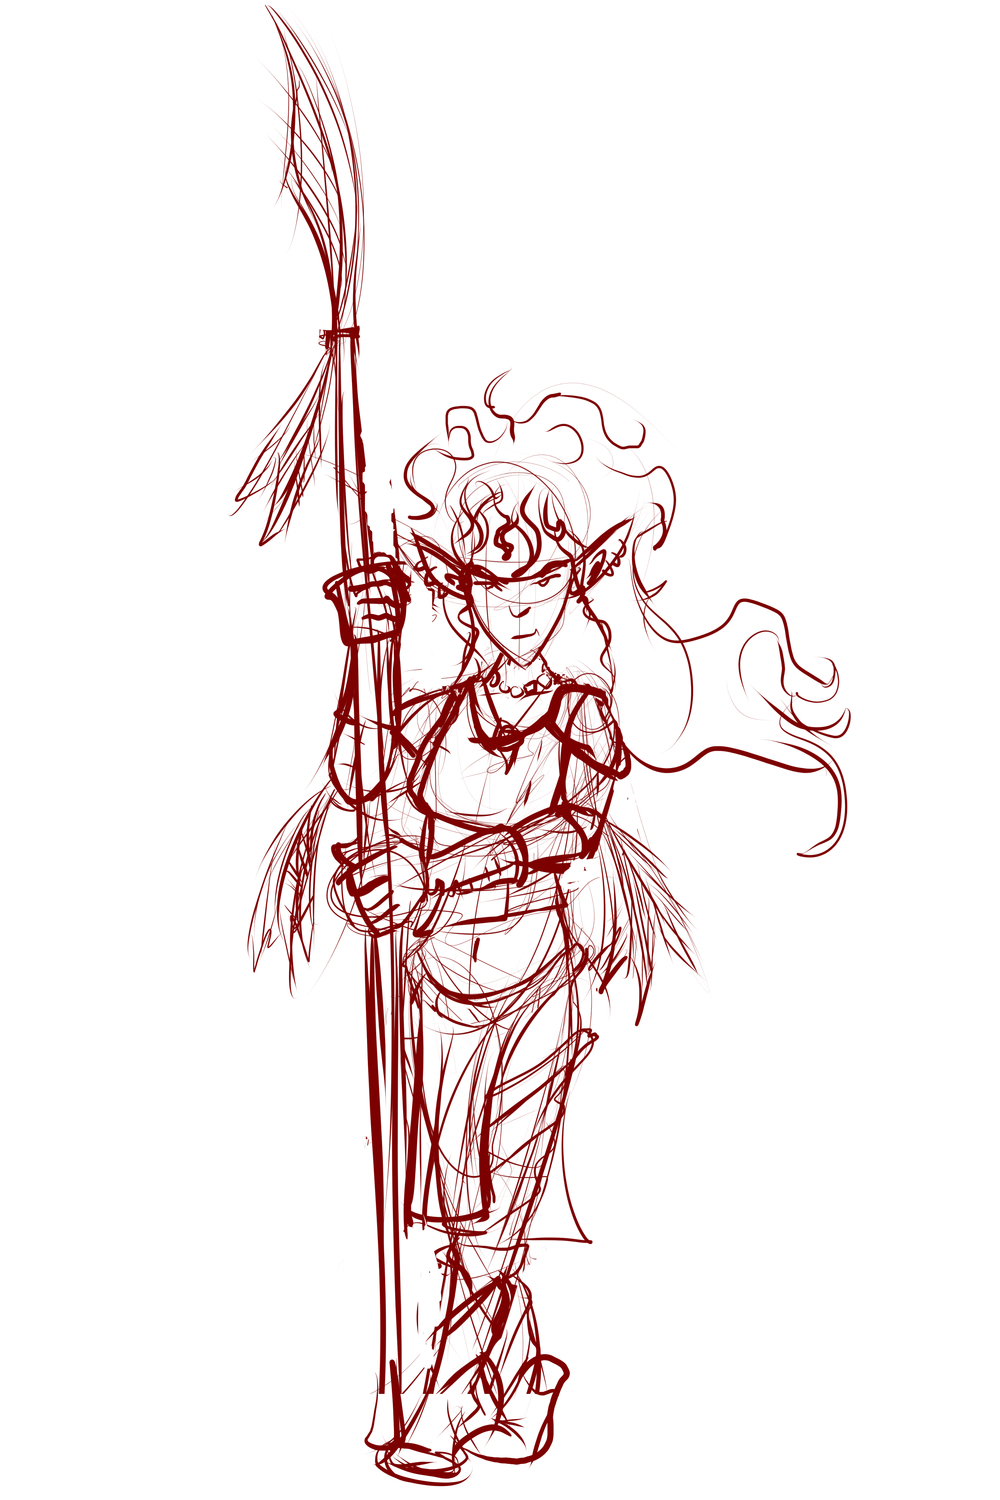 Elf Barbarian - Sketch